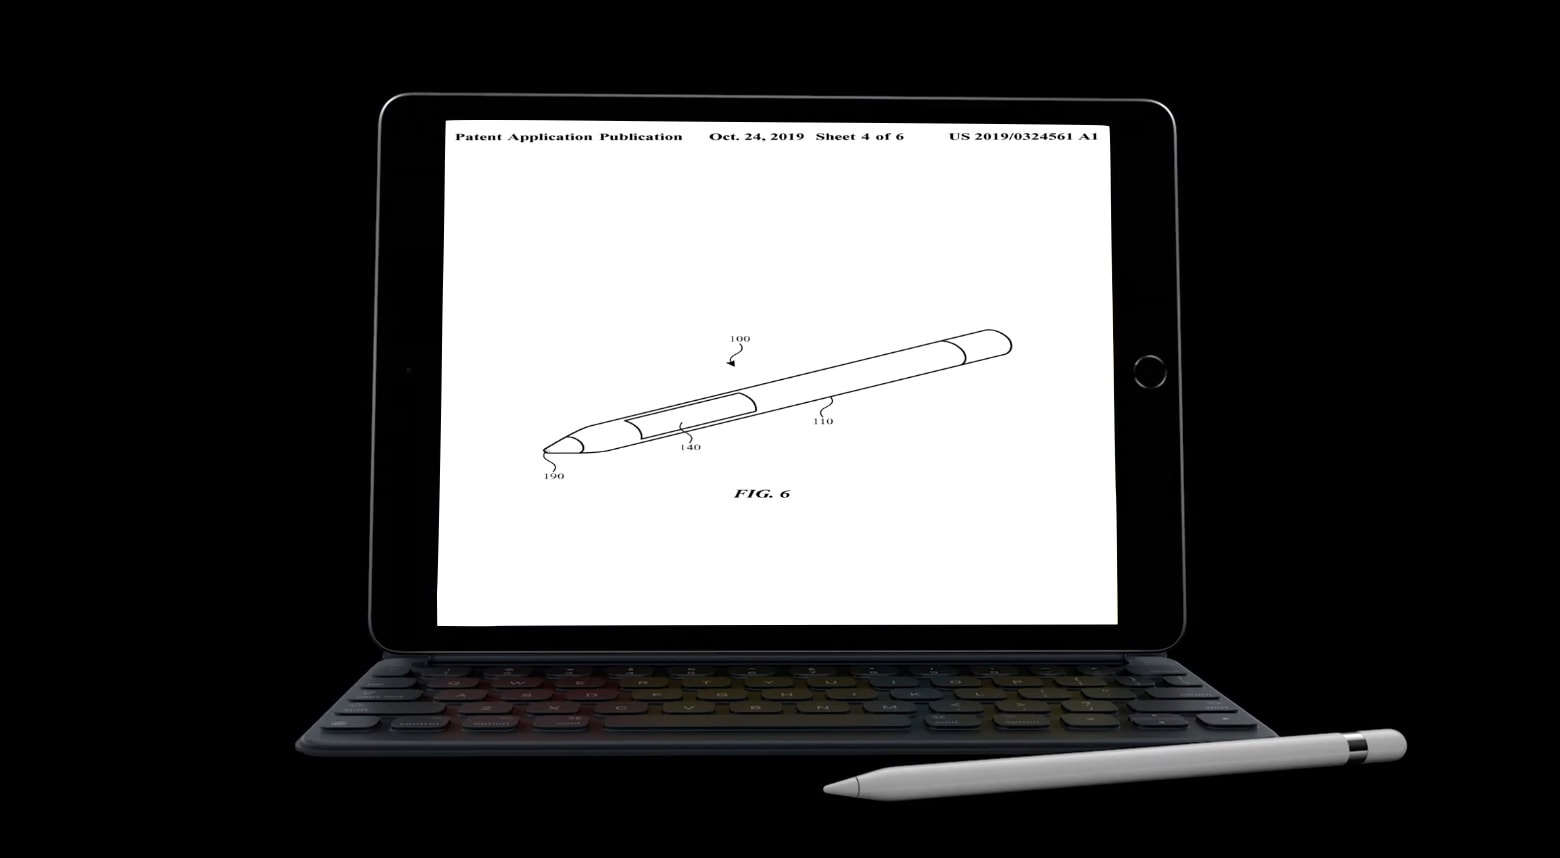 Apple Pencil with touchscreen patent filing